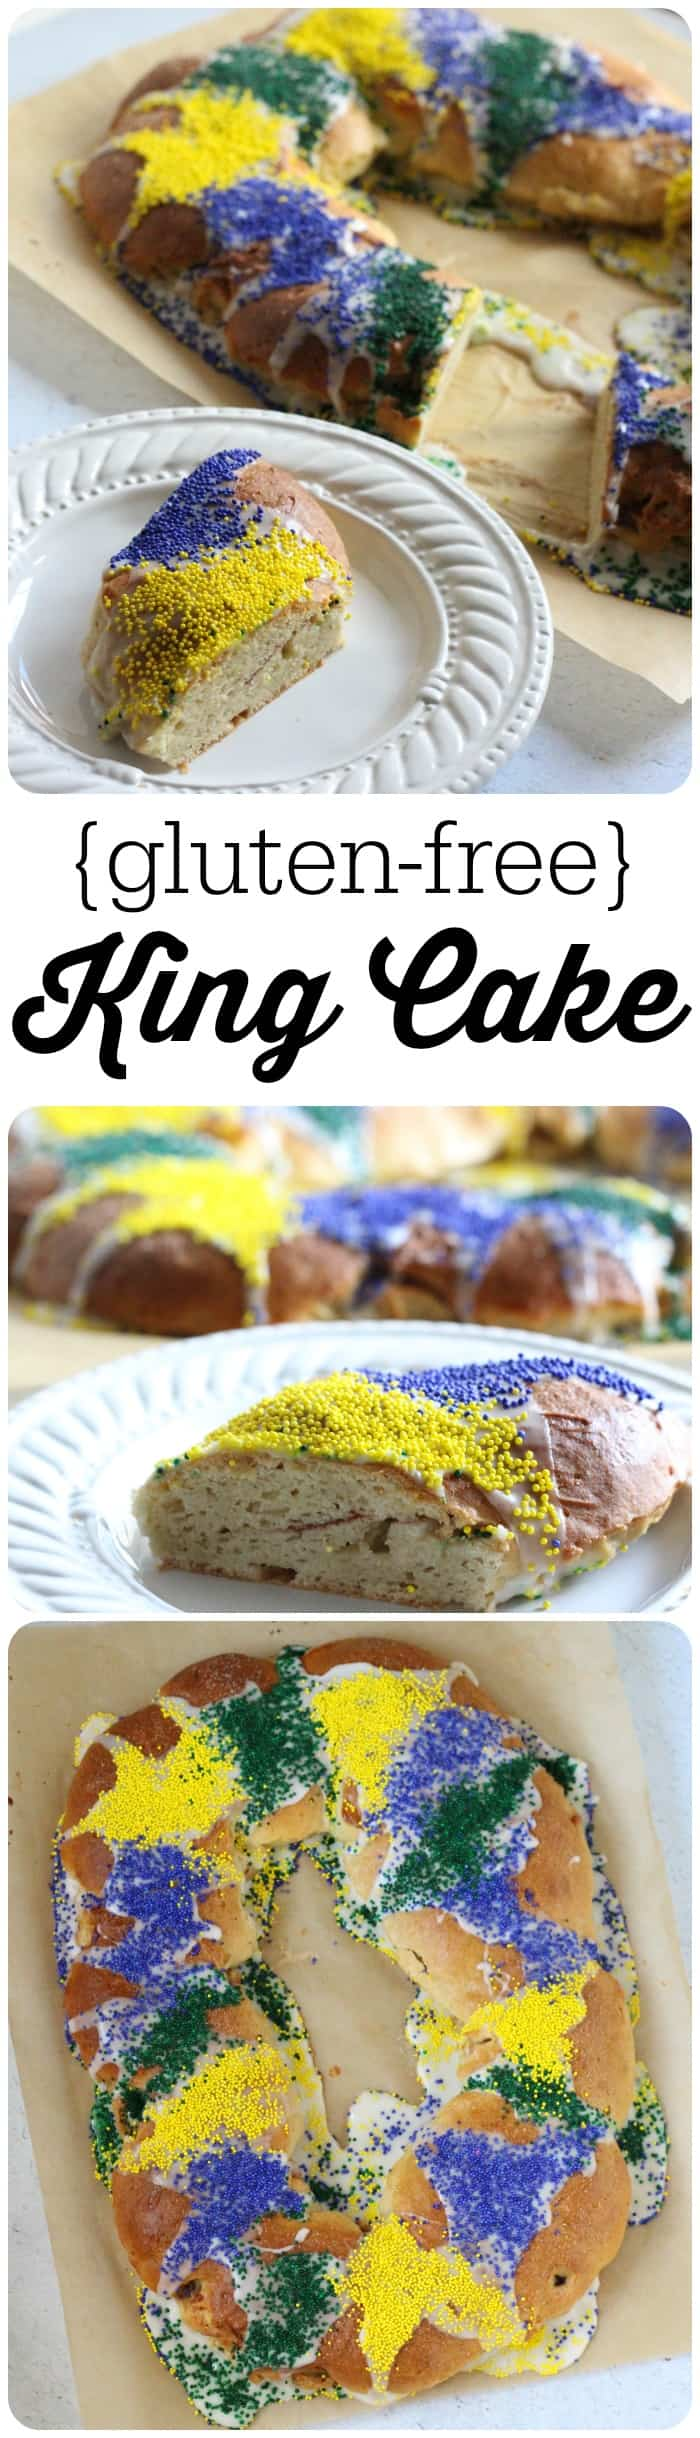 This gluten free king cake recipe is super easy to make and nobody will know the difference!